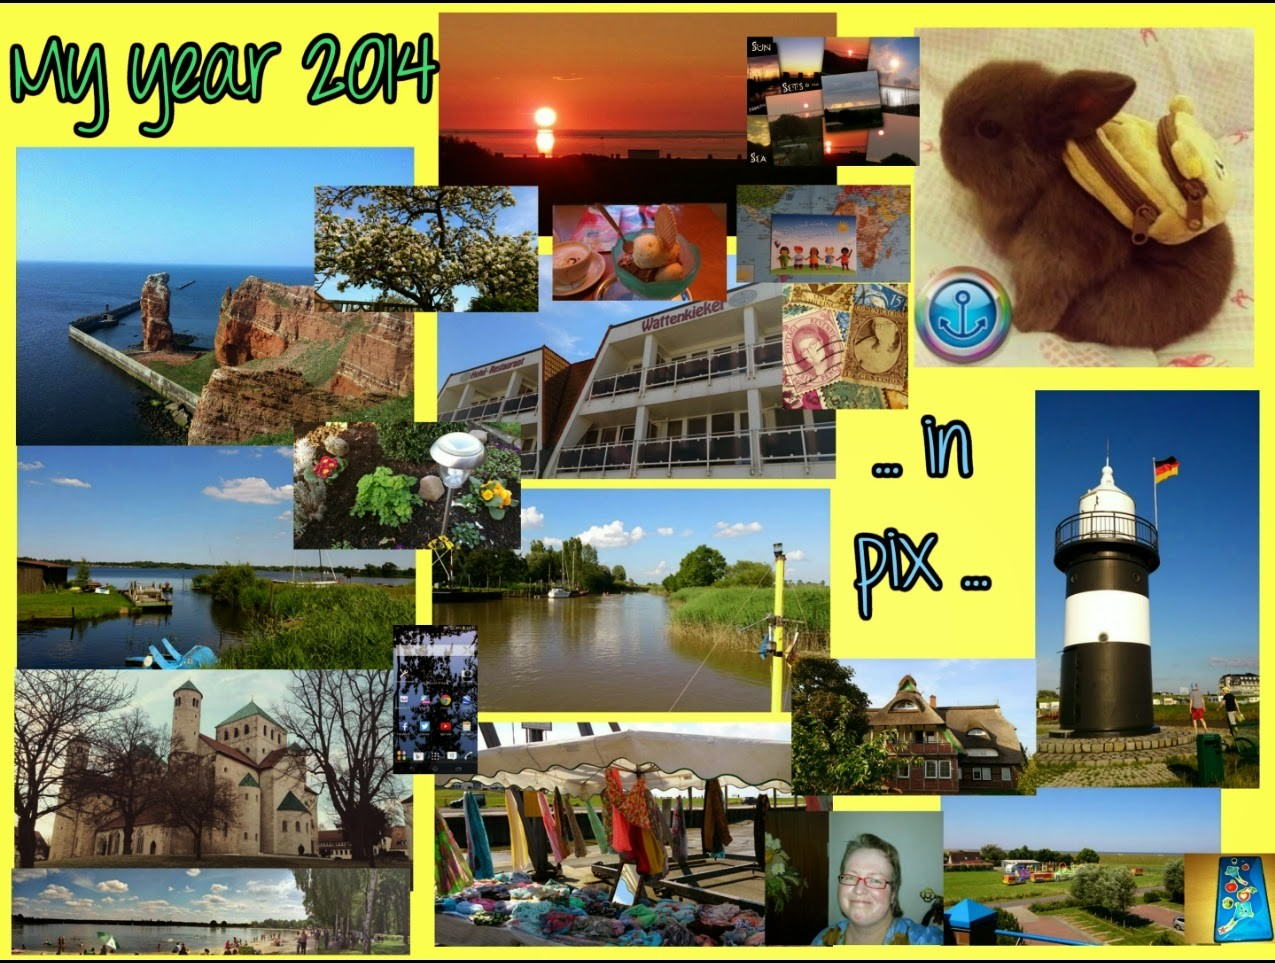 ~ Bild: My Year 2014 in pix ~